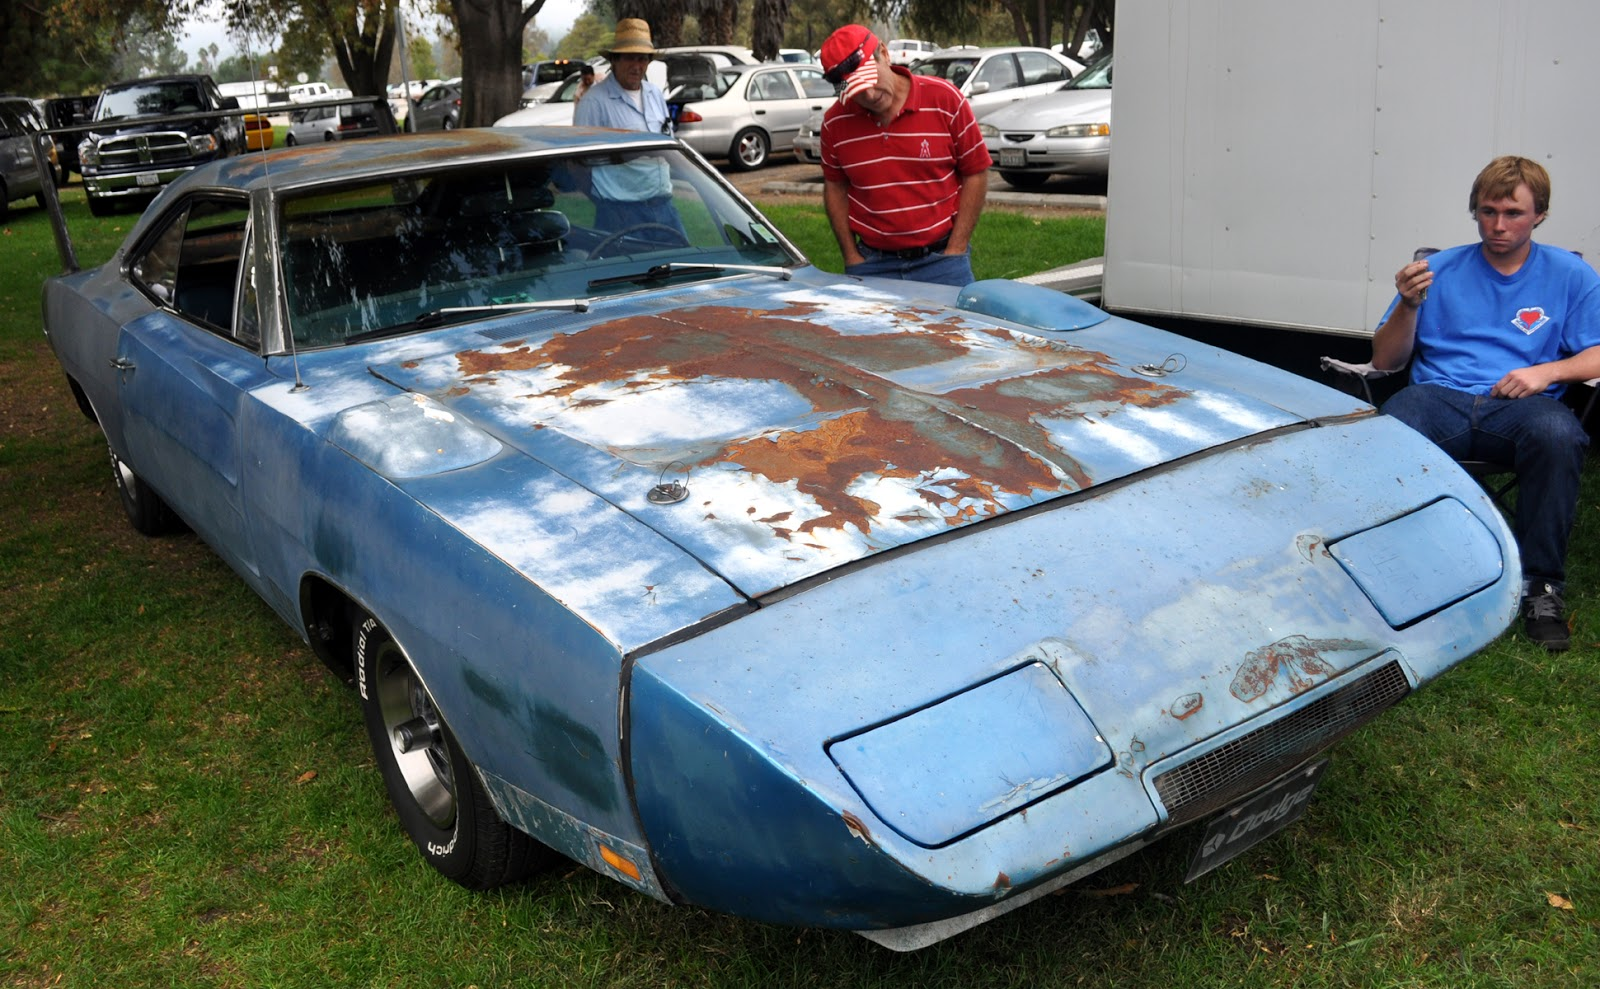 Just A Car Guy  An unrestored 1969 Dodge Daytona  looking like it s     An unrestored 1969 Dodge Daytona  looking like it s had a really rough  life  No its not for sale